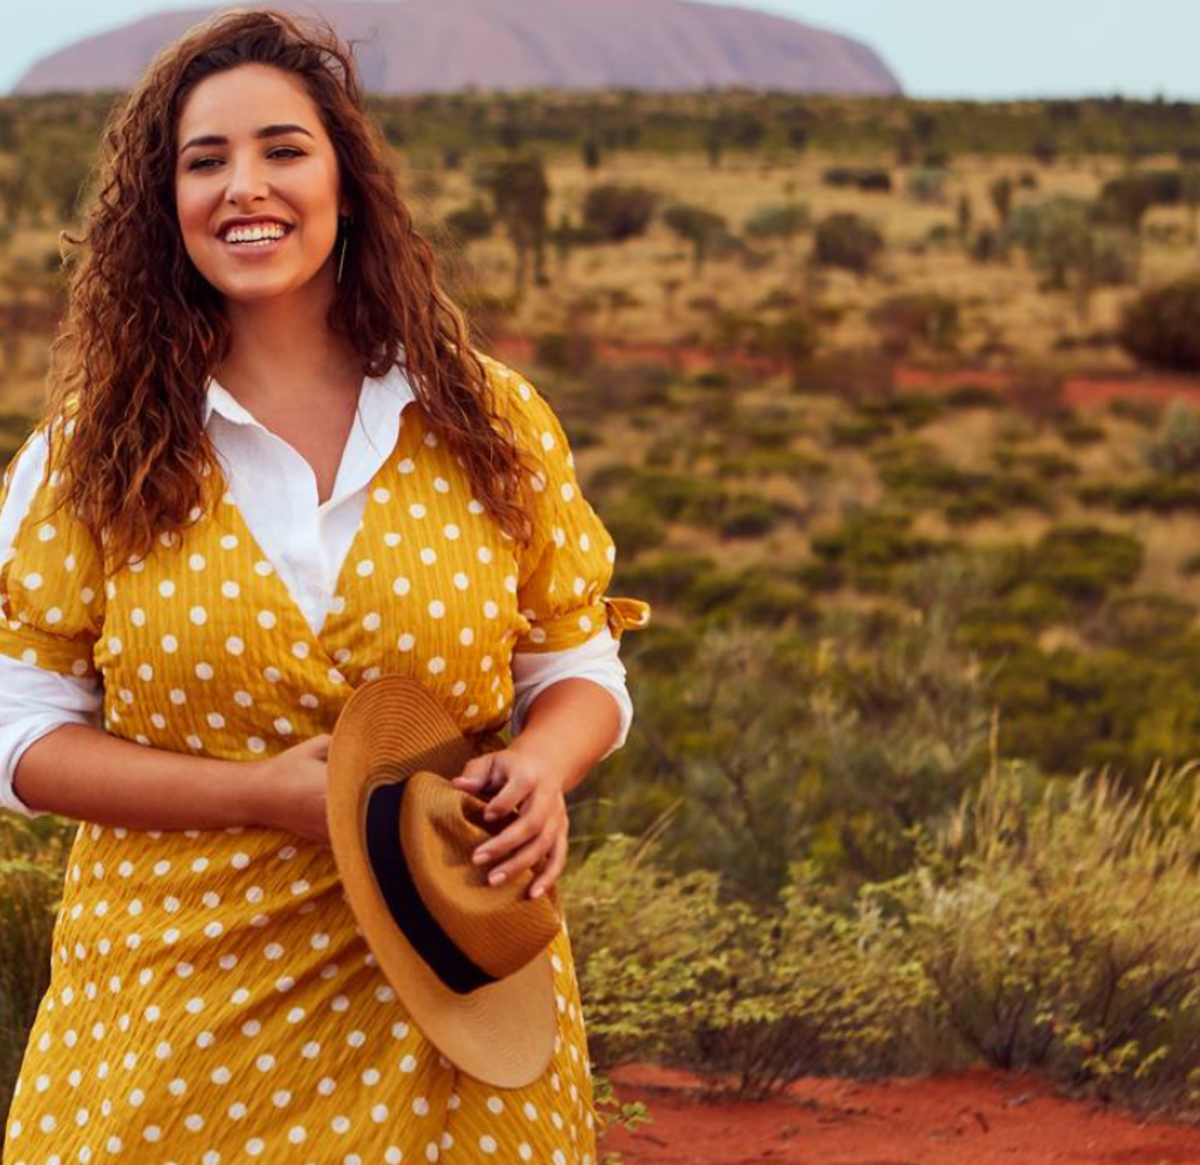 The Iconic offers trendy plus-size options